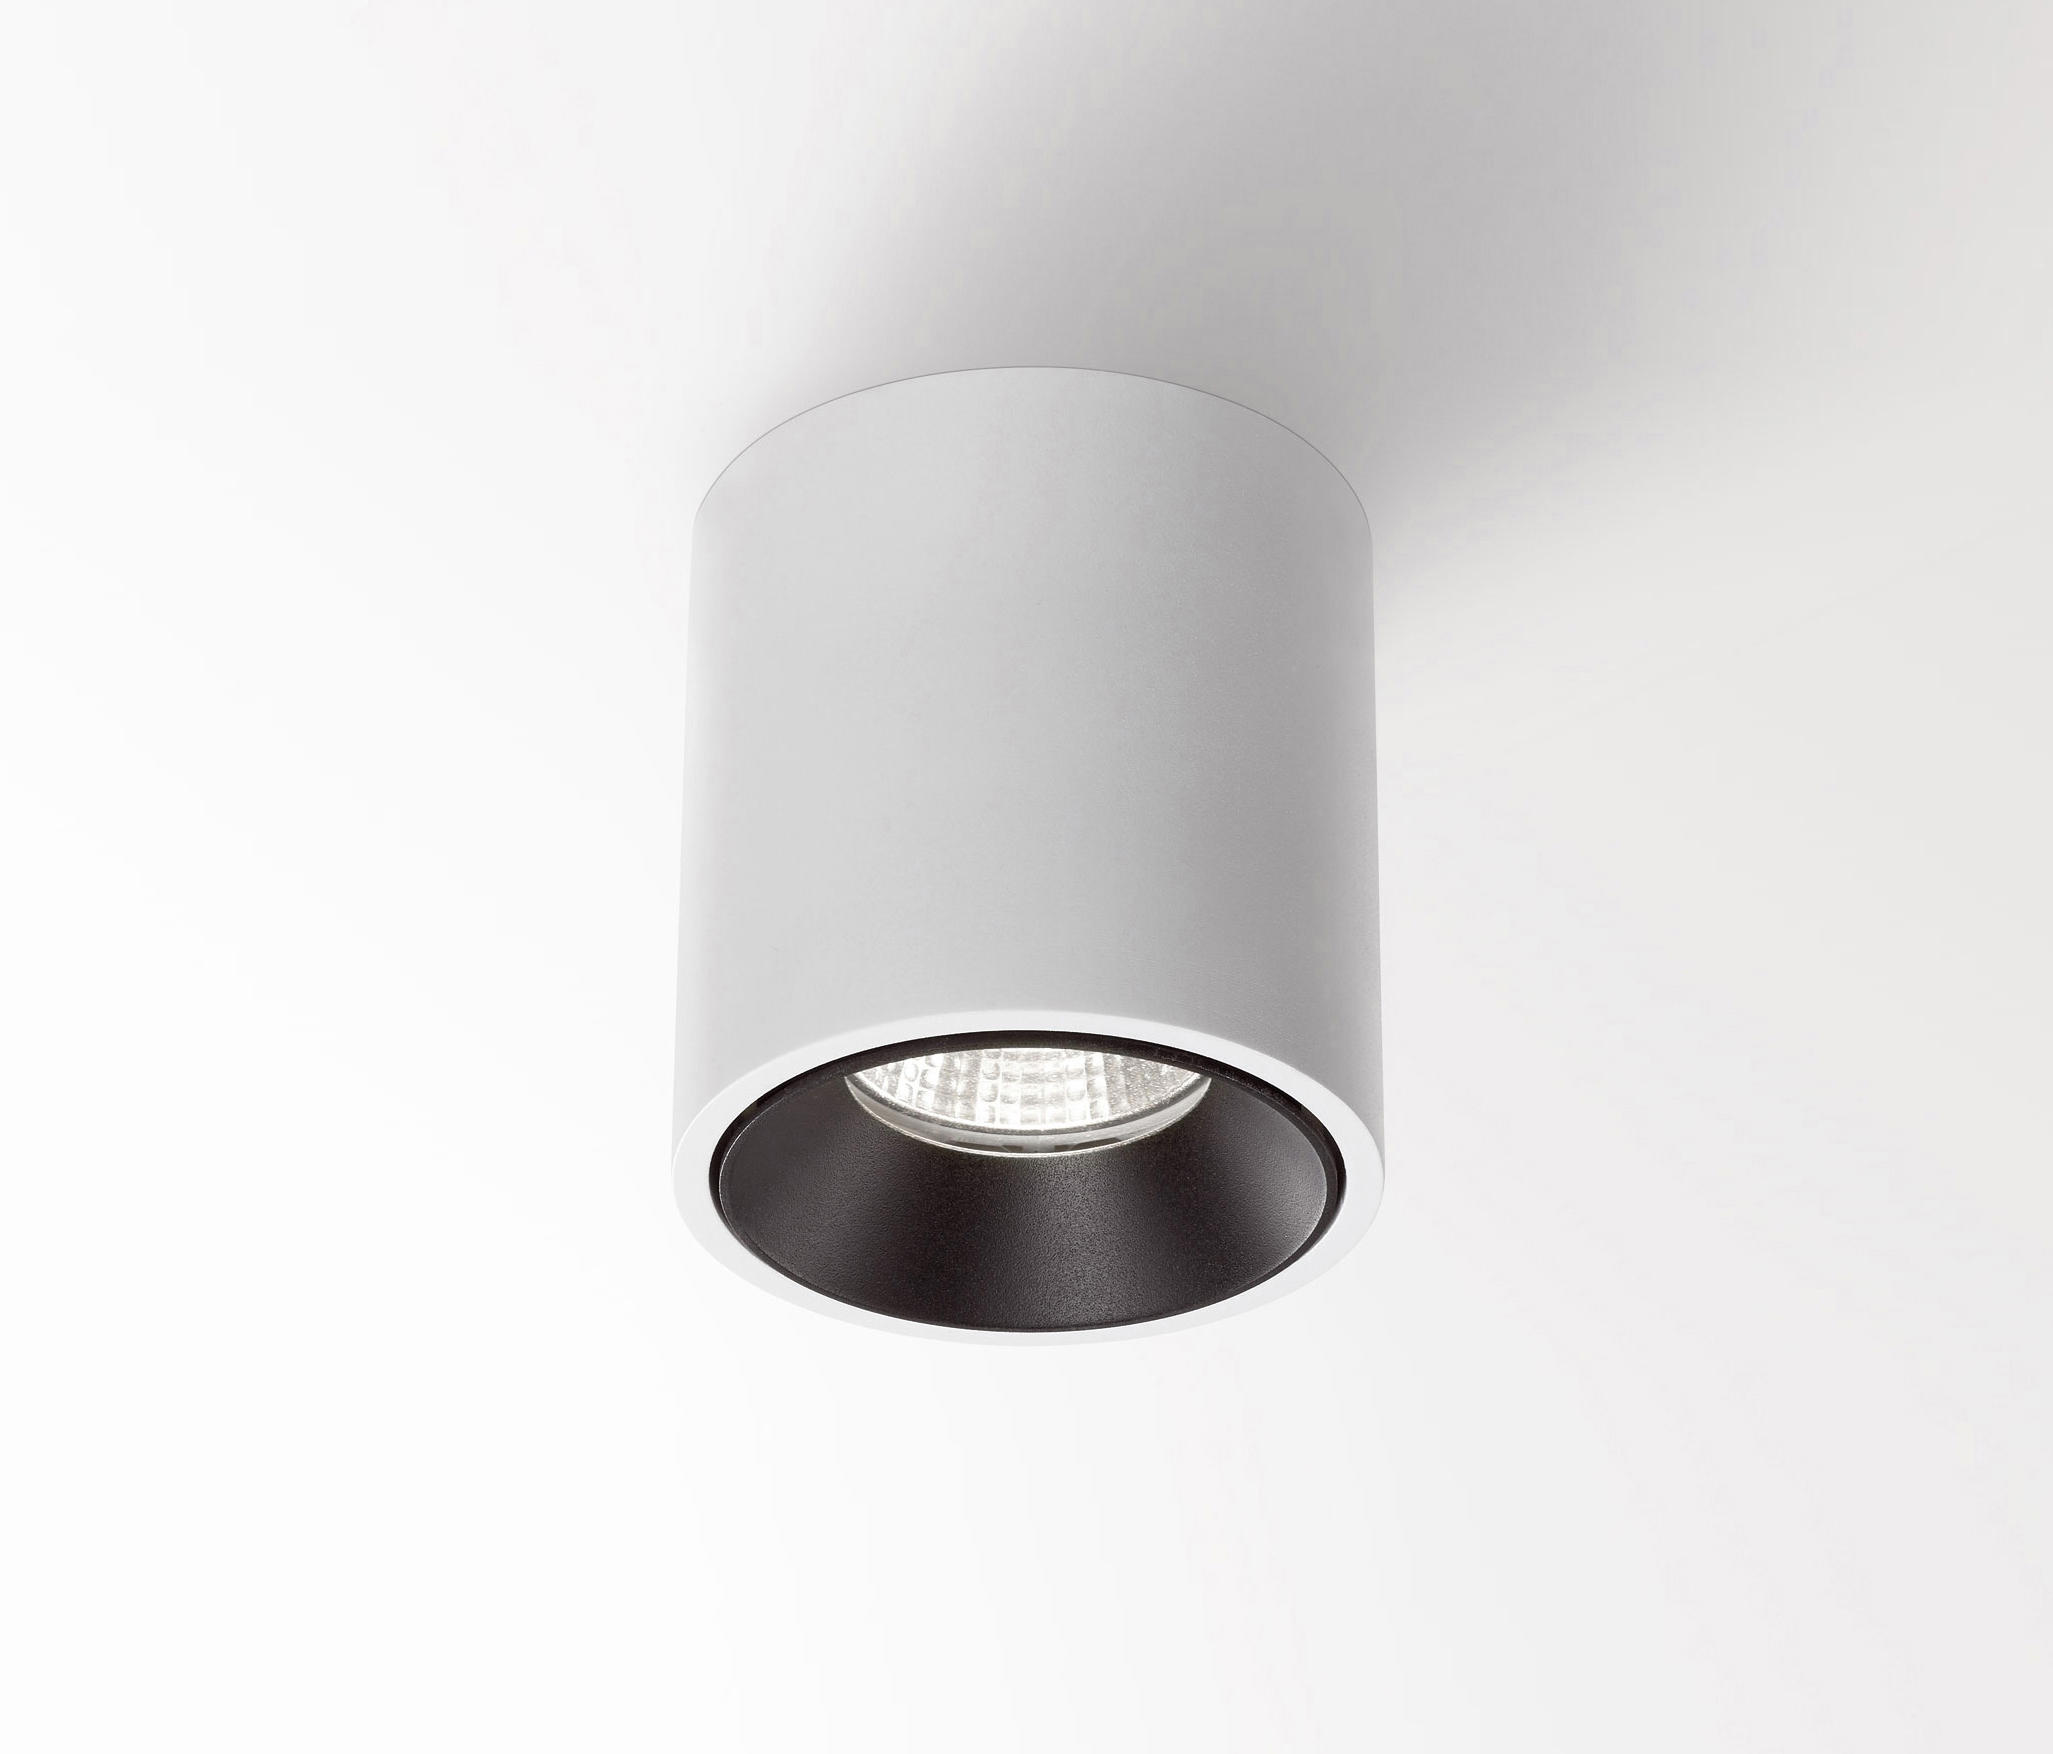 Boxy Xl R Boxy Xl R 82720 Ceiling Lights From Delta